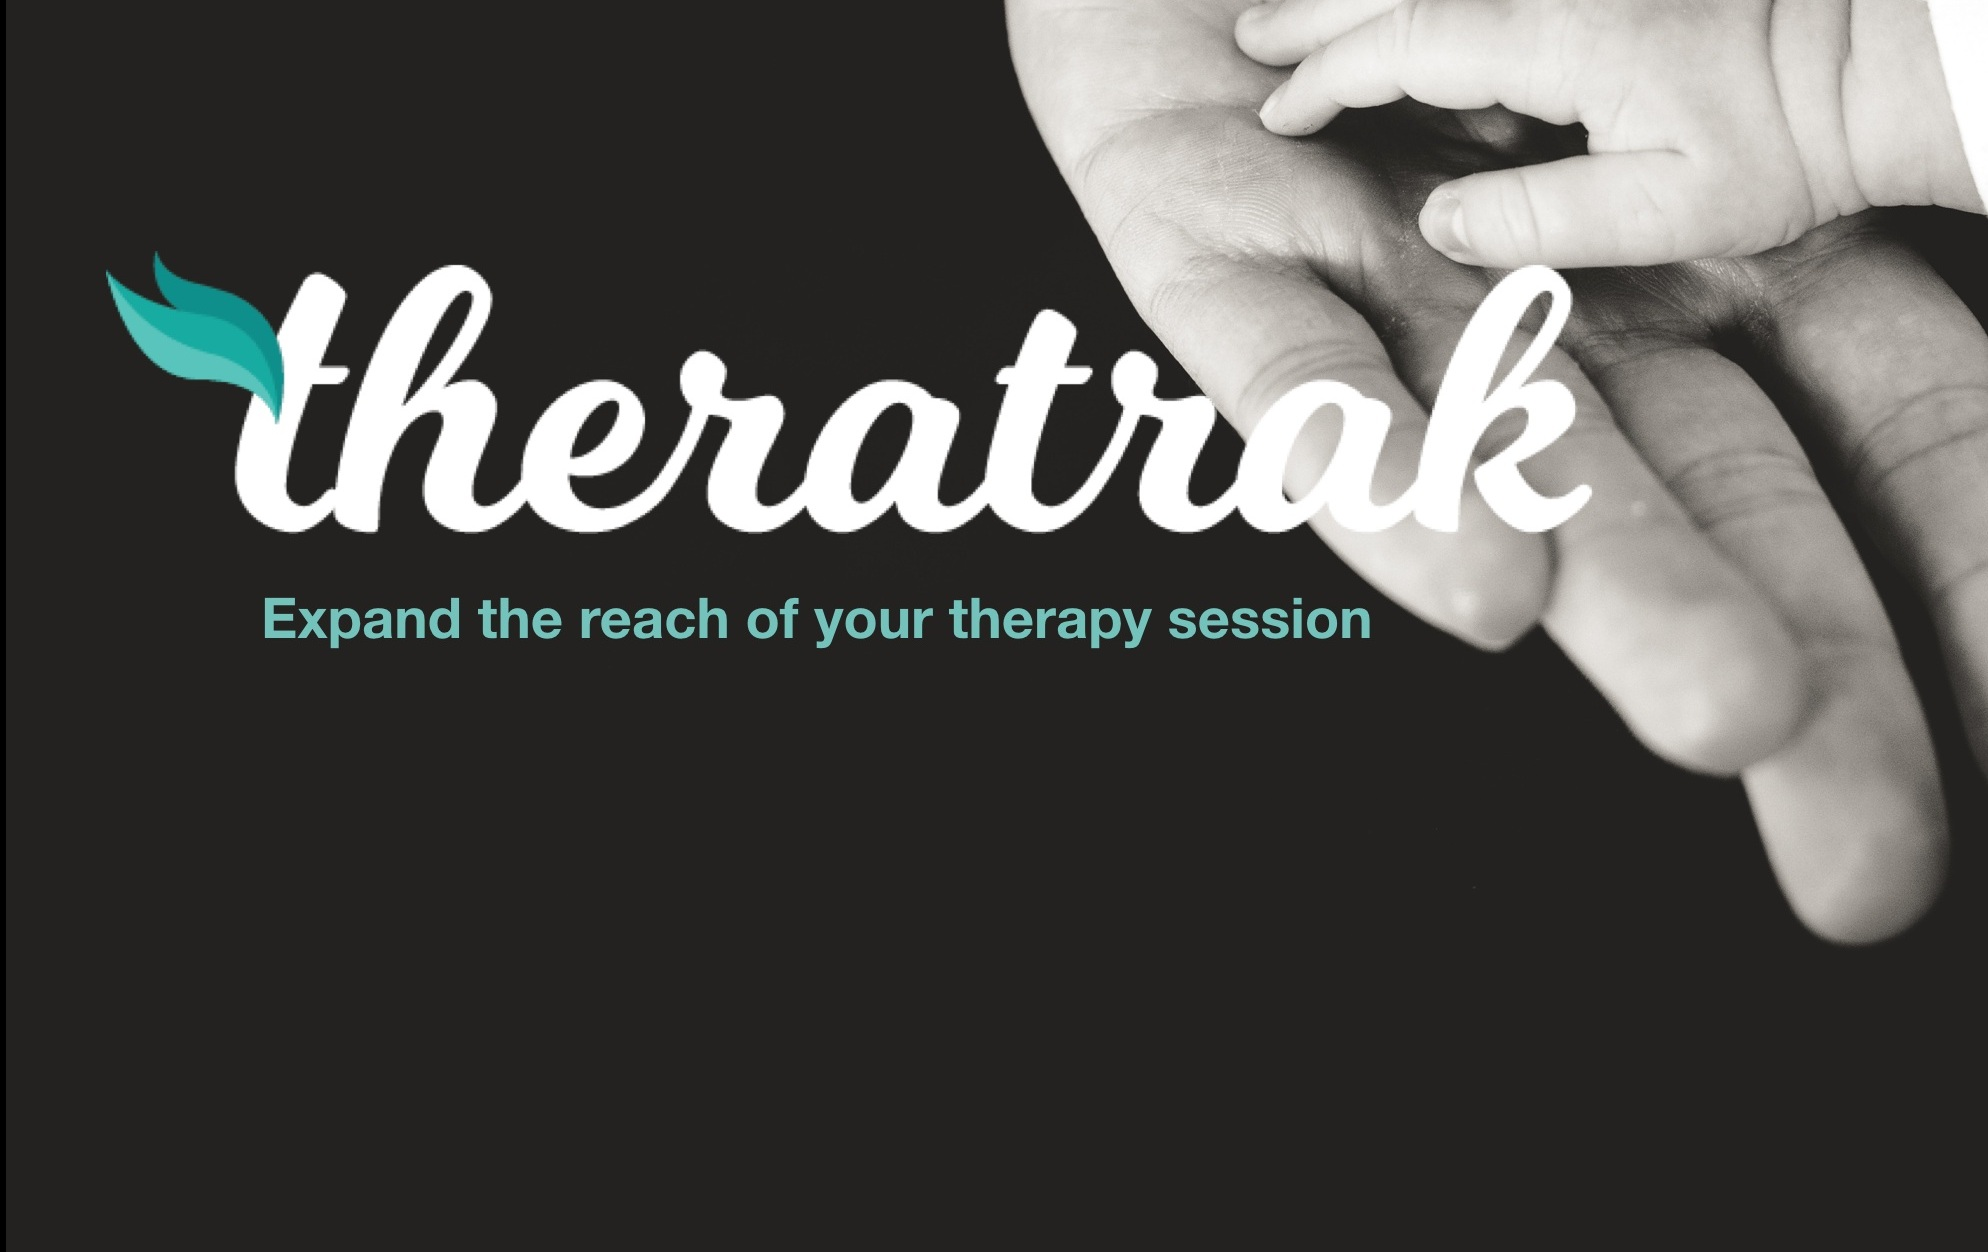 HEATH TECH From Occupational Therapist To Startup Founder – Theratrak Looks To Bridge The Gap Between Therapy Sessions